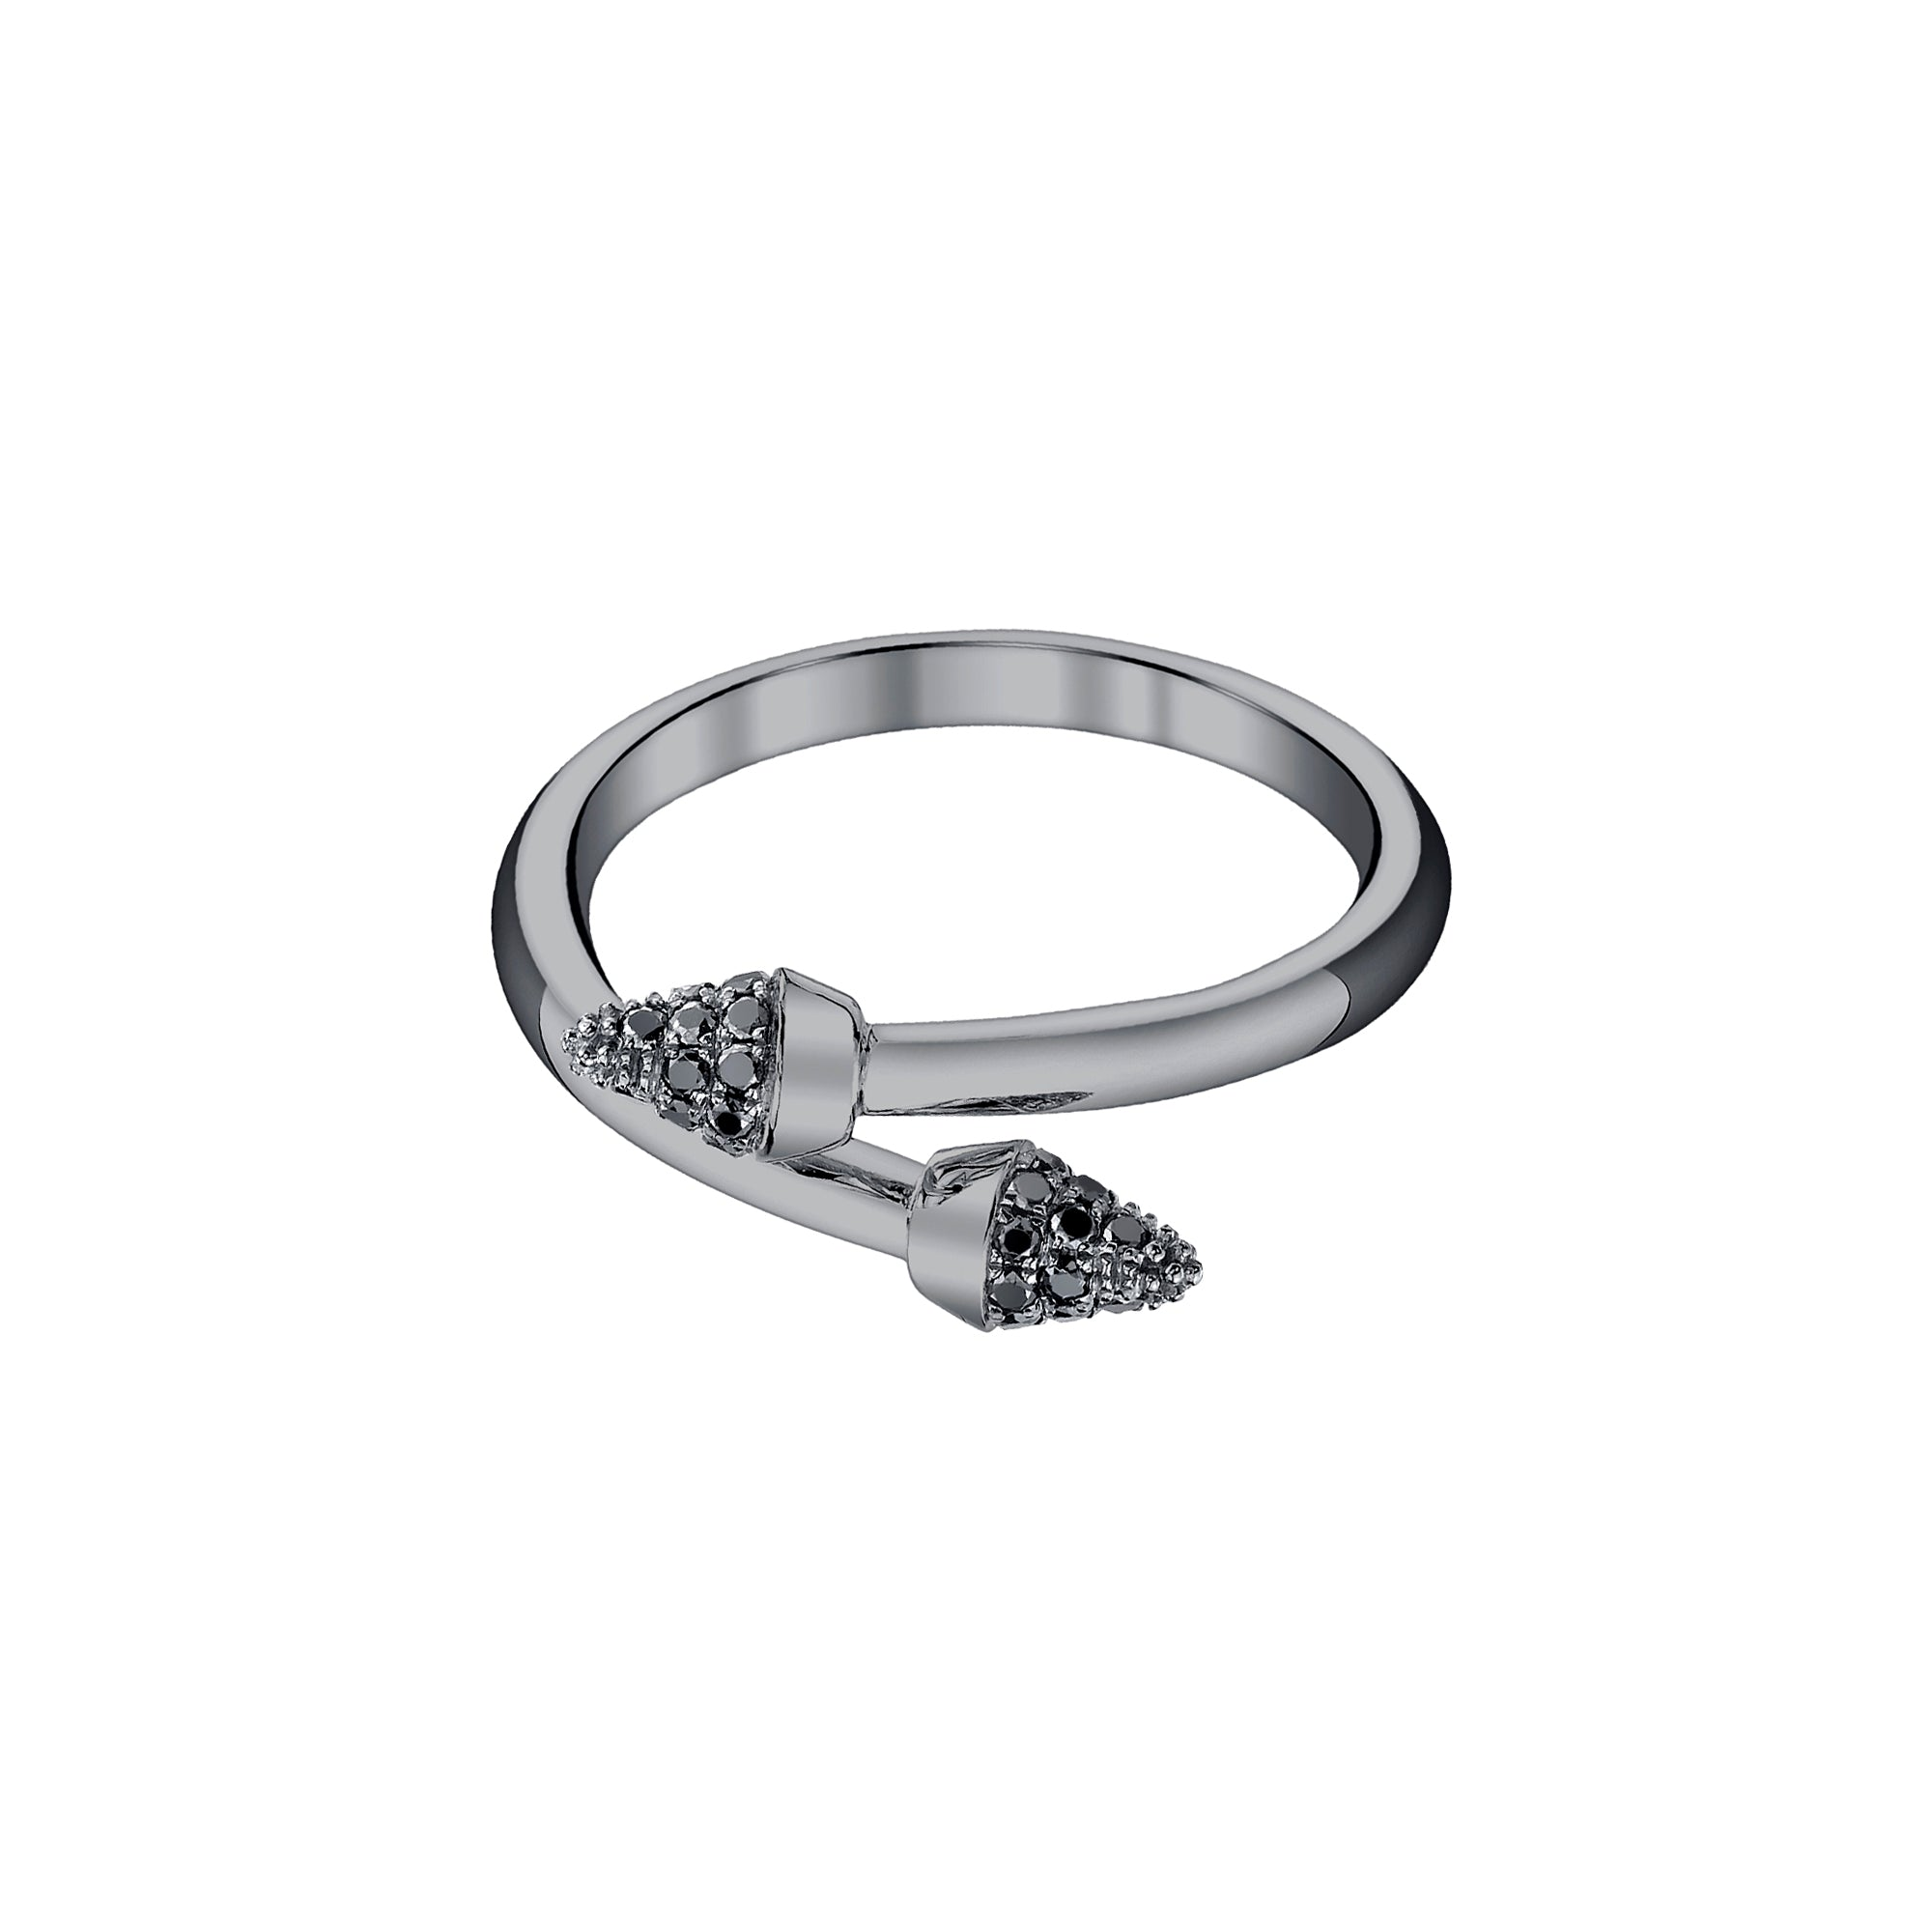 Black Rhodium & Black Diamond Stackable Spike Band by Borgioni for Broken English Jewelry